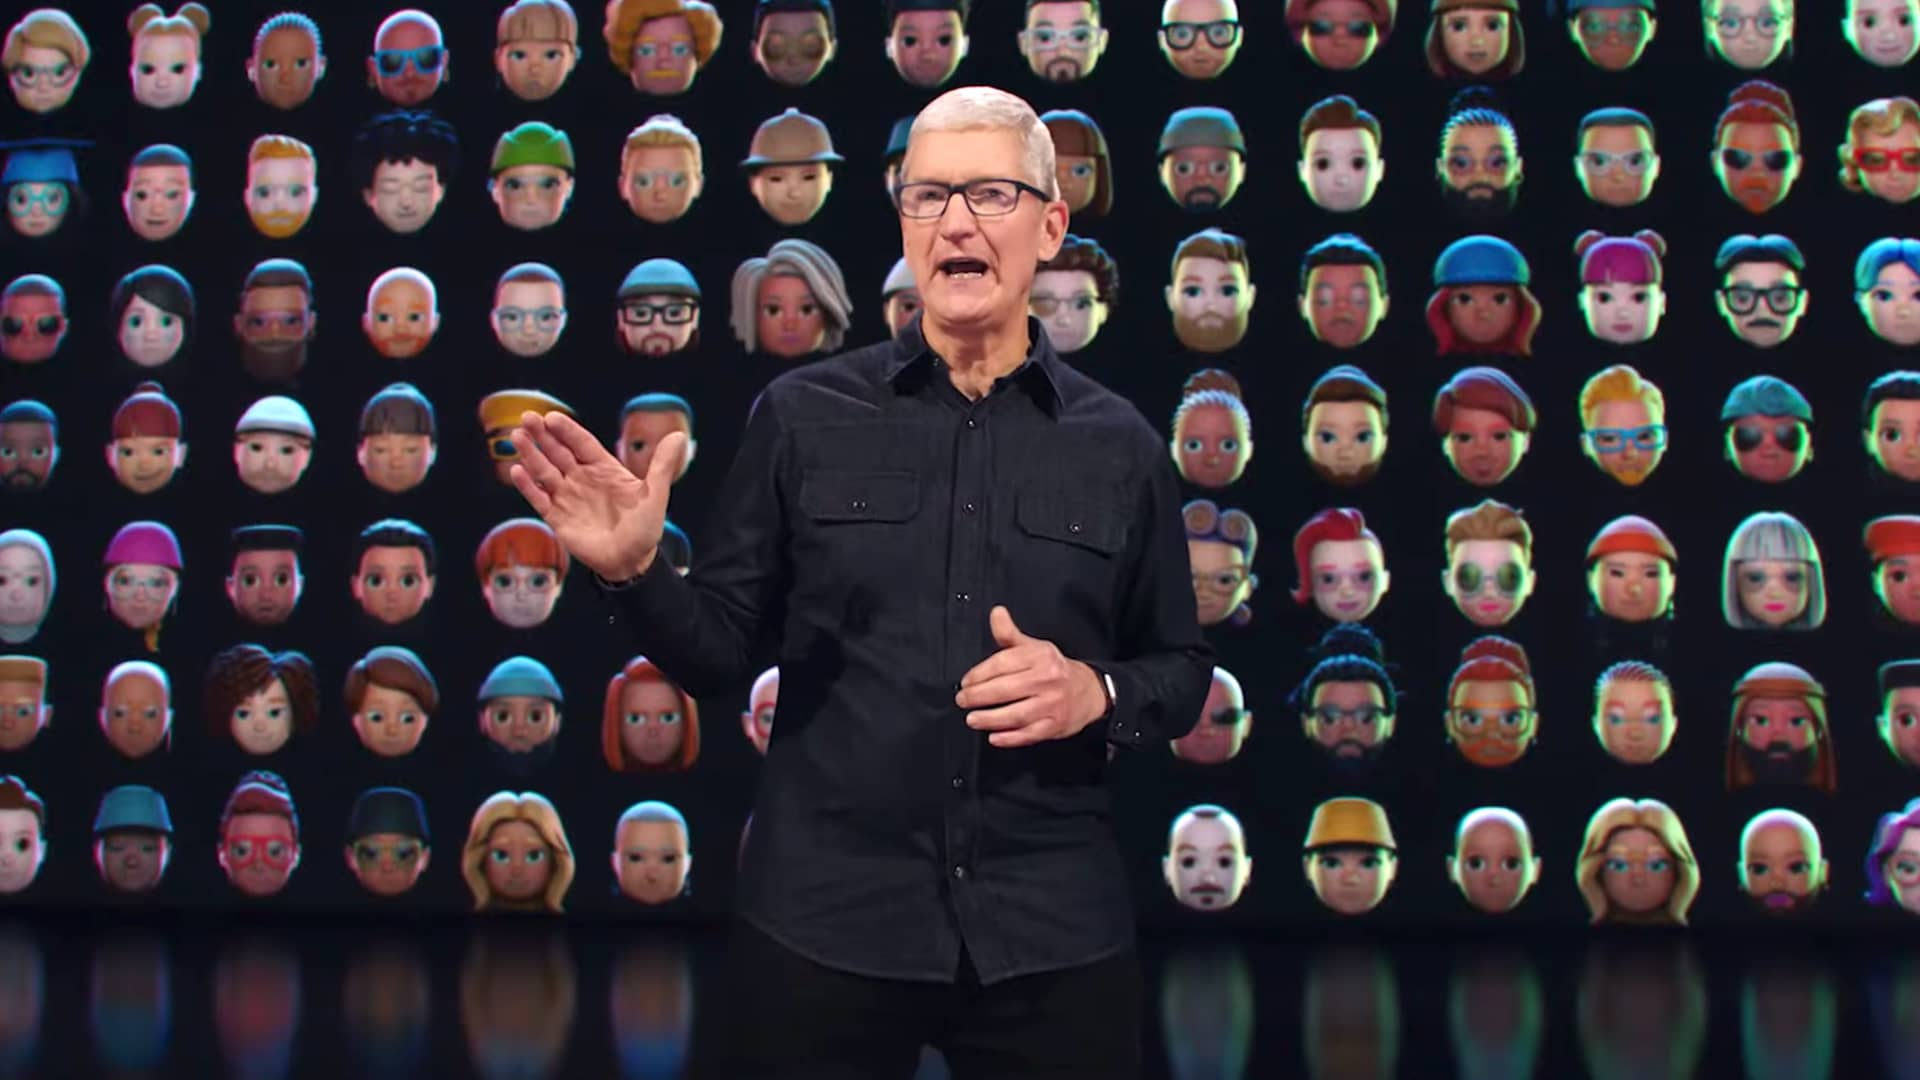 Tim Cook at WWDC21 on June 7th, 2021.